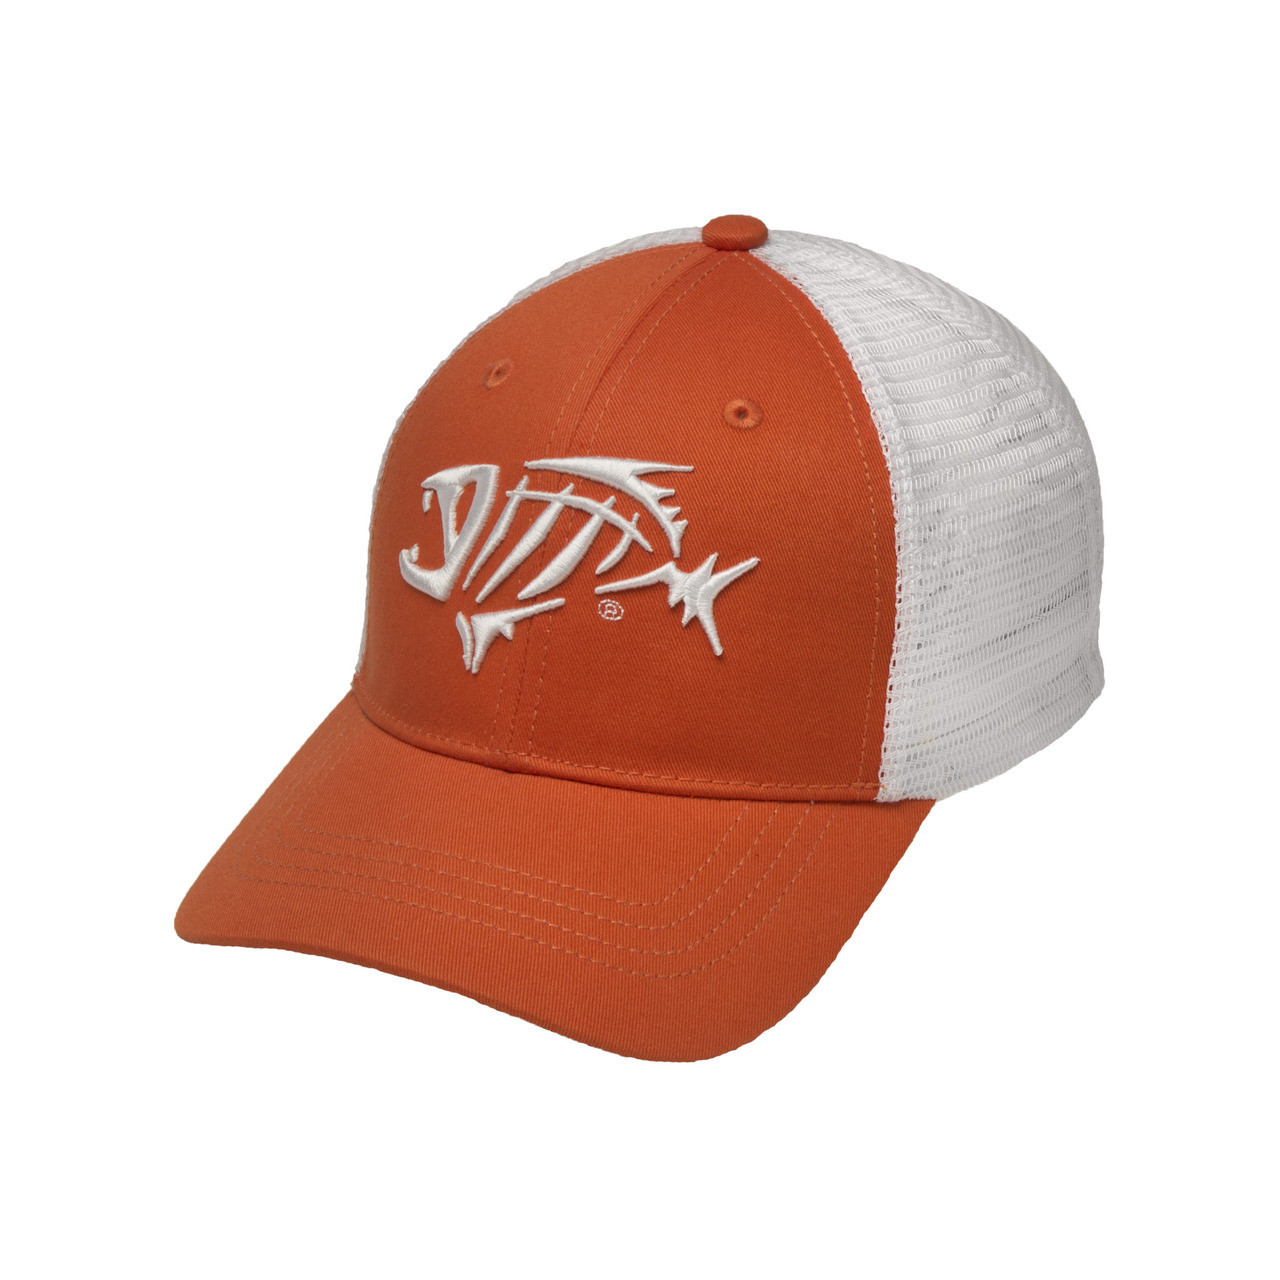 G. Loomis Bandit Trucker Cap, Orange